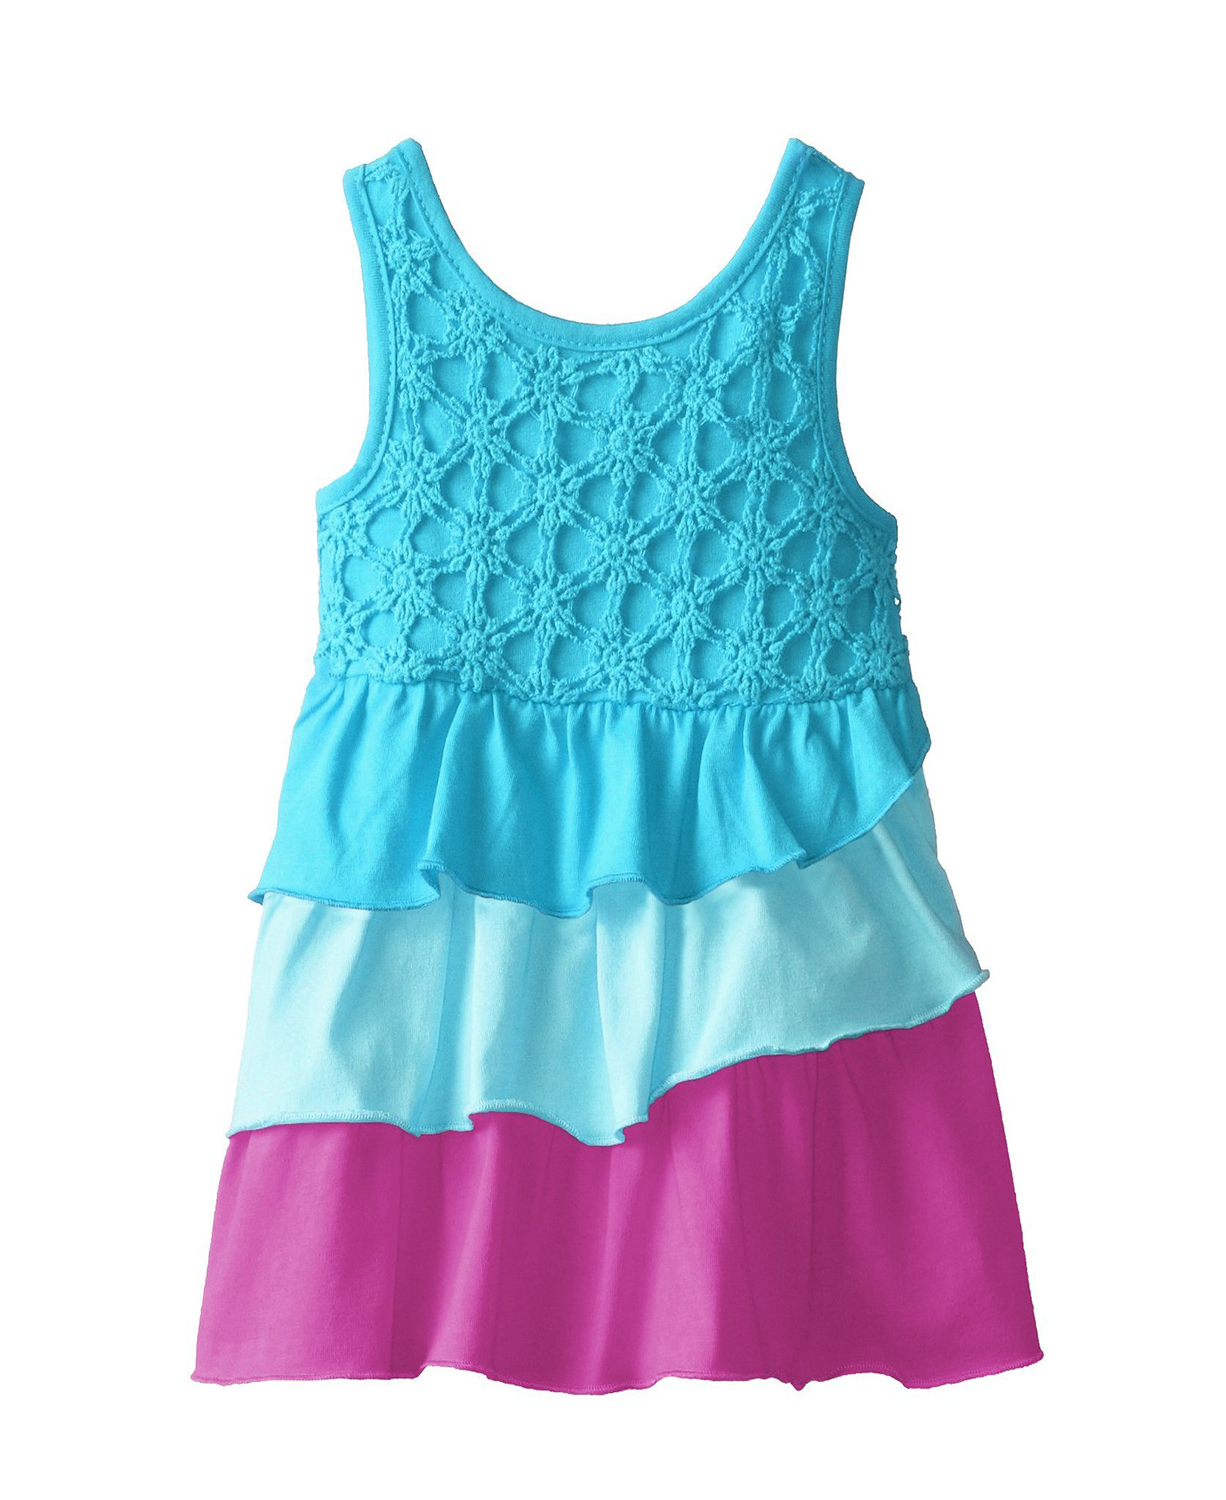 Kidtopia Baby-Girls Infant Tiered with Daisy Eyelet Yoke Knit Baby ...